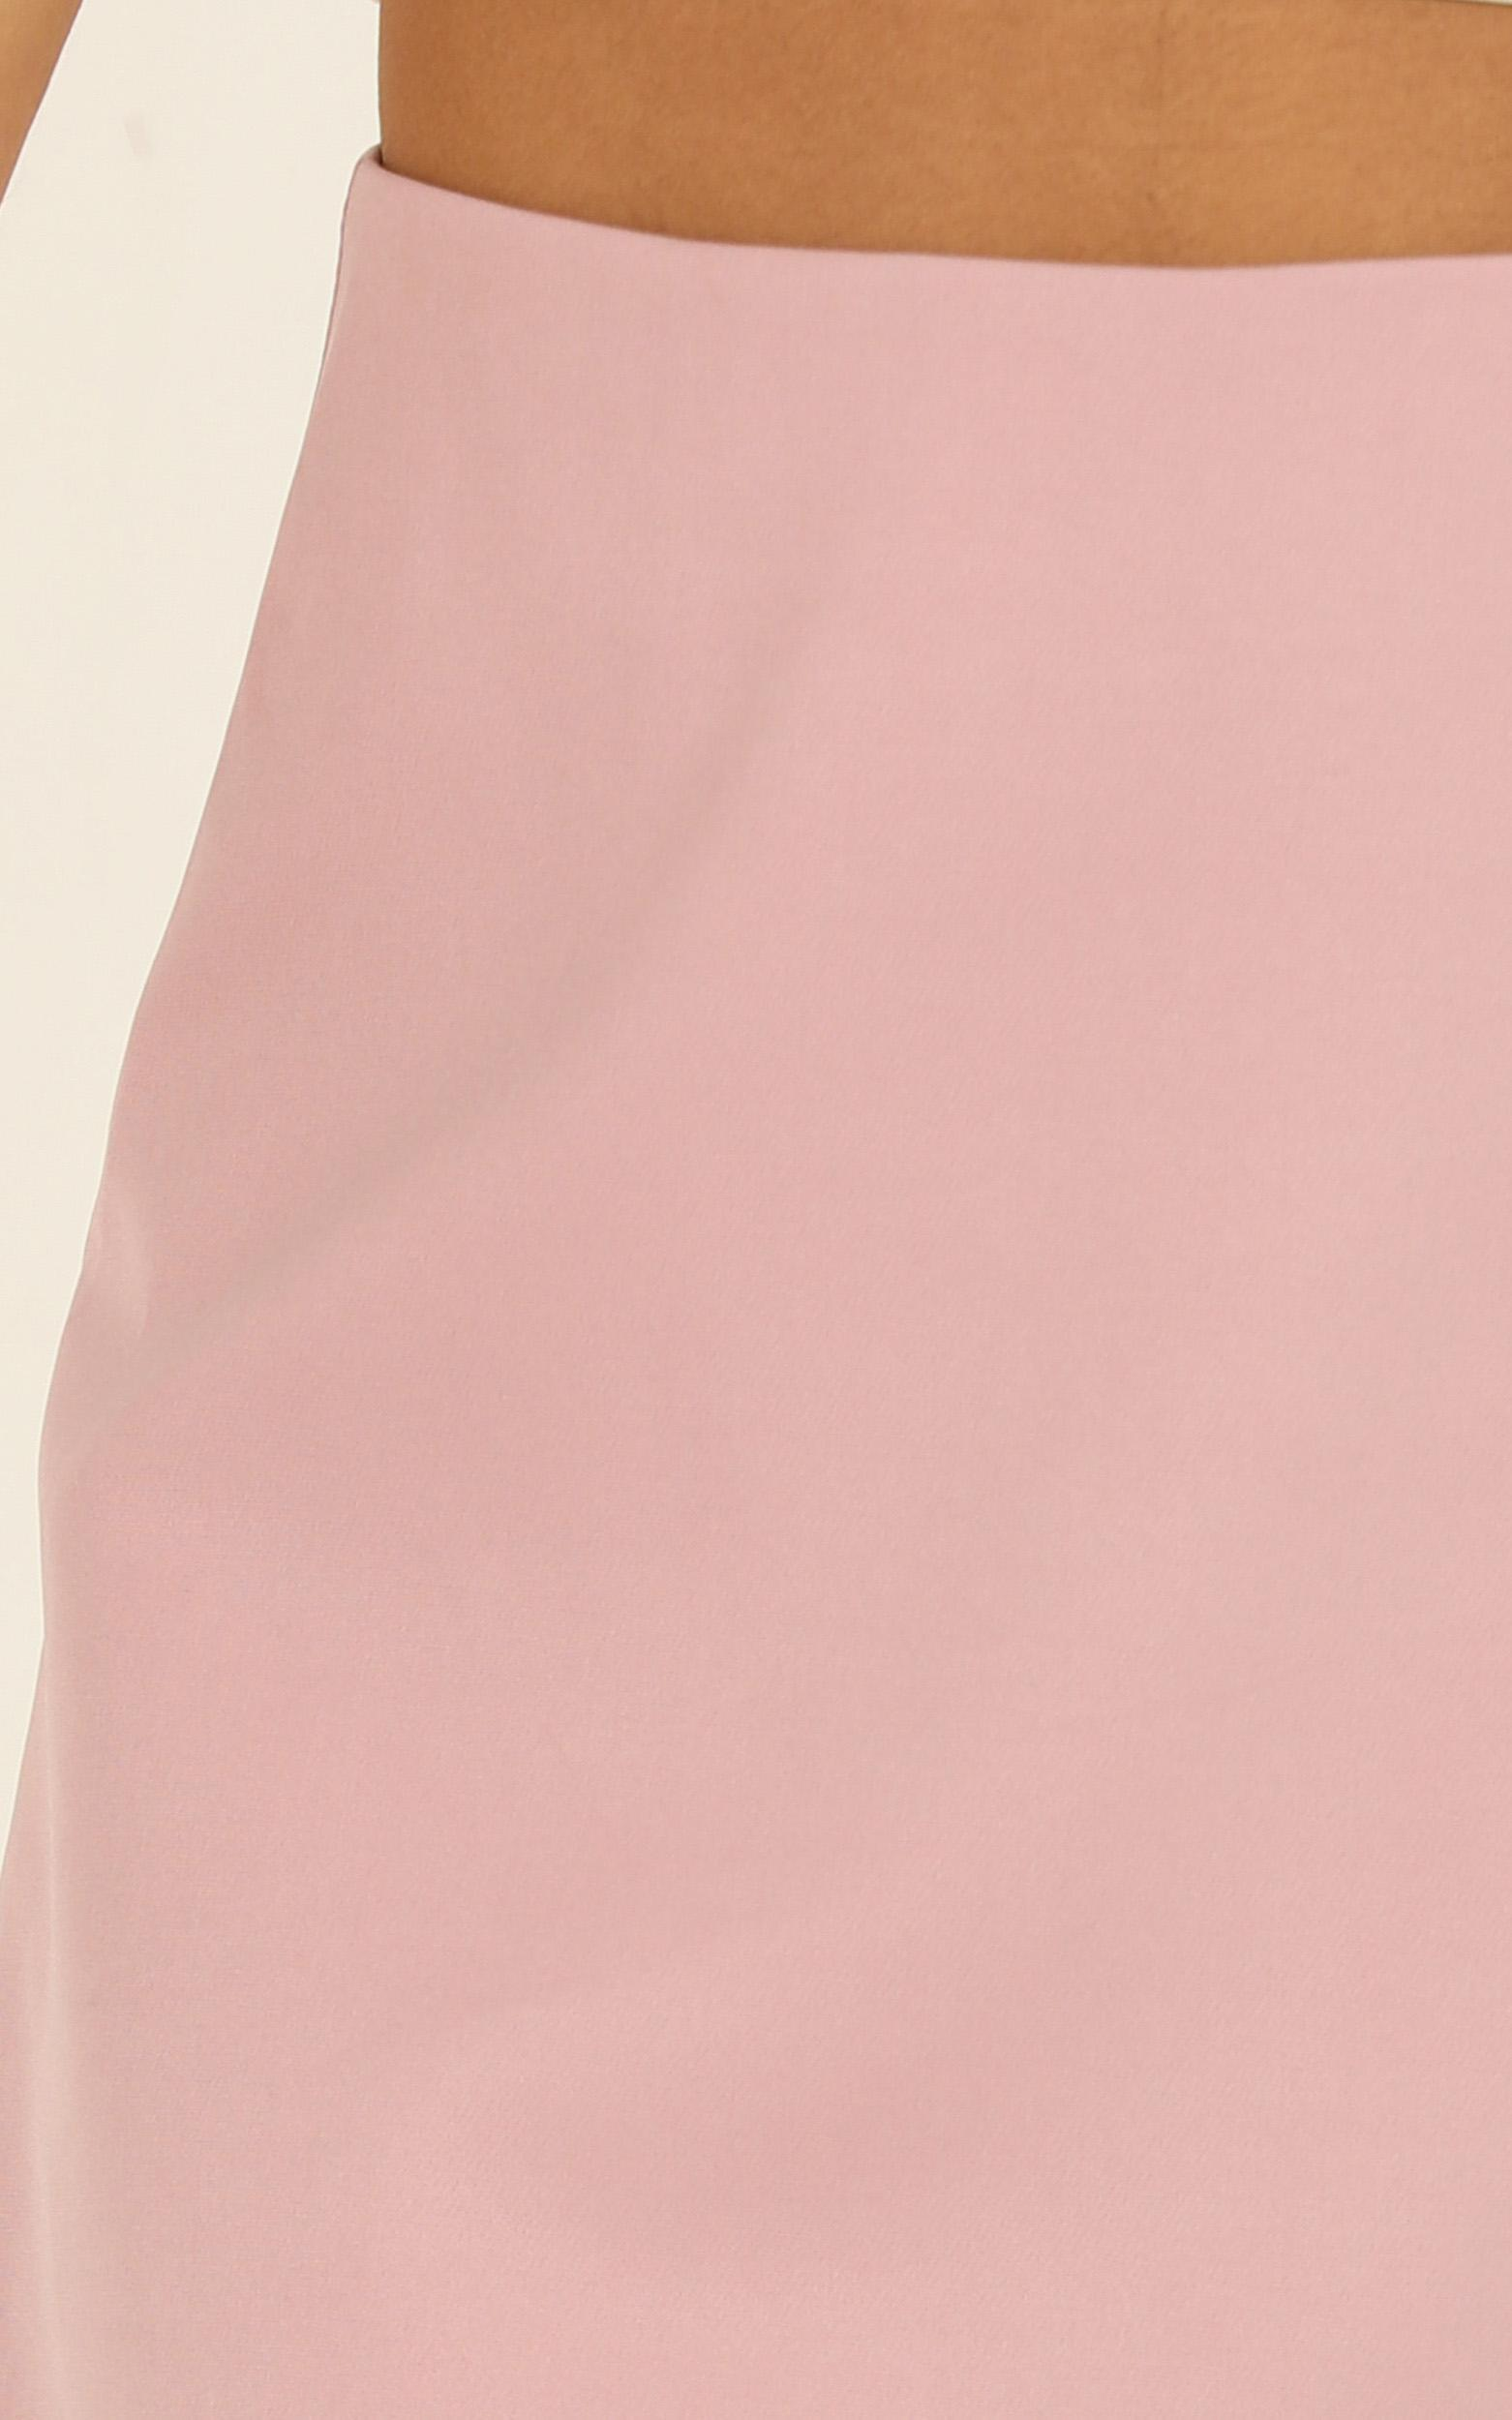 We Want It All skirt in  blush - 20 (XXXXL), Blush, hi-res image number null